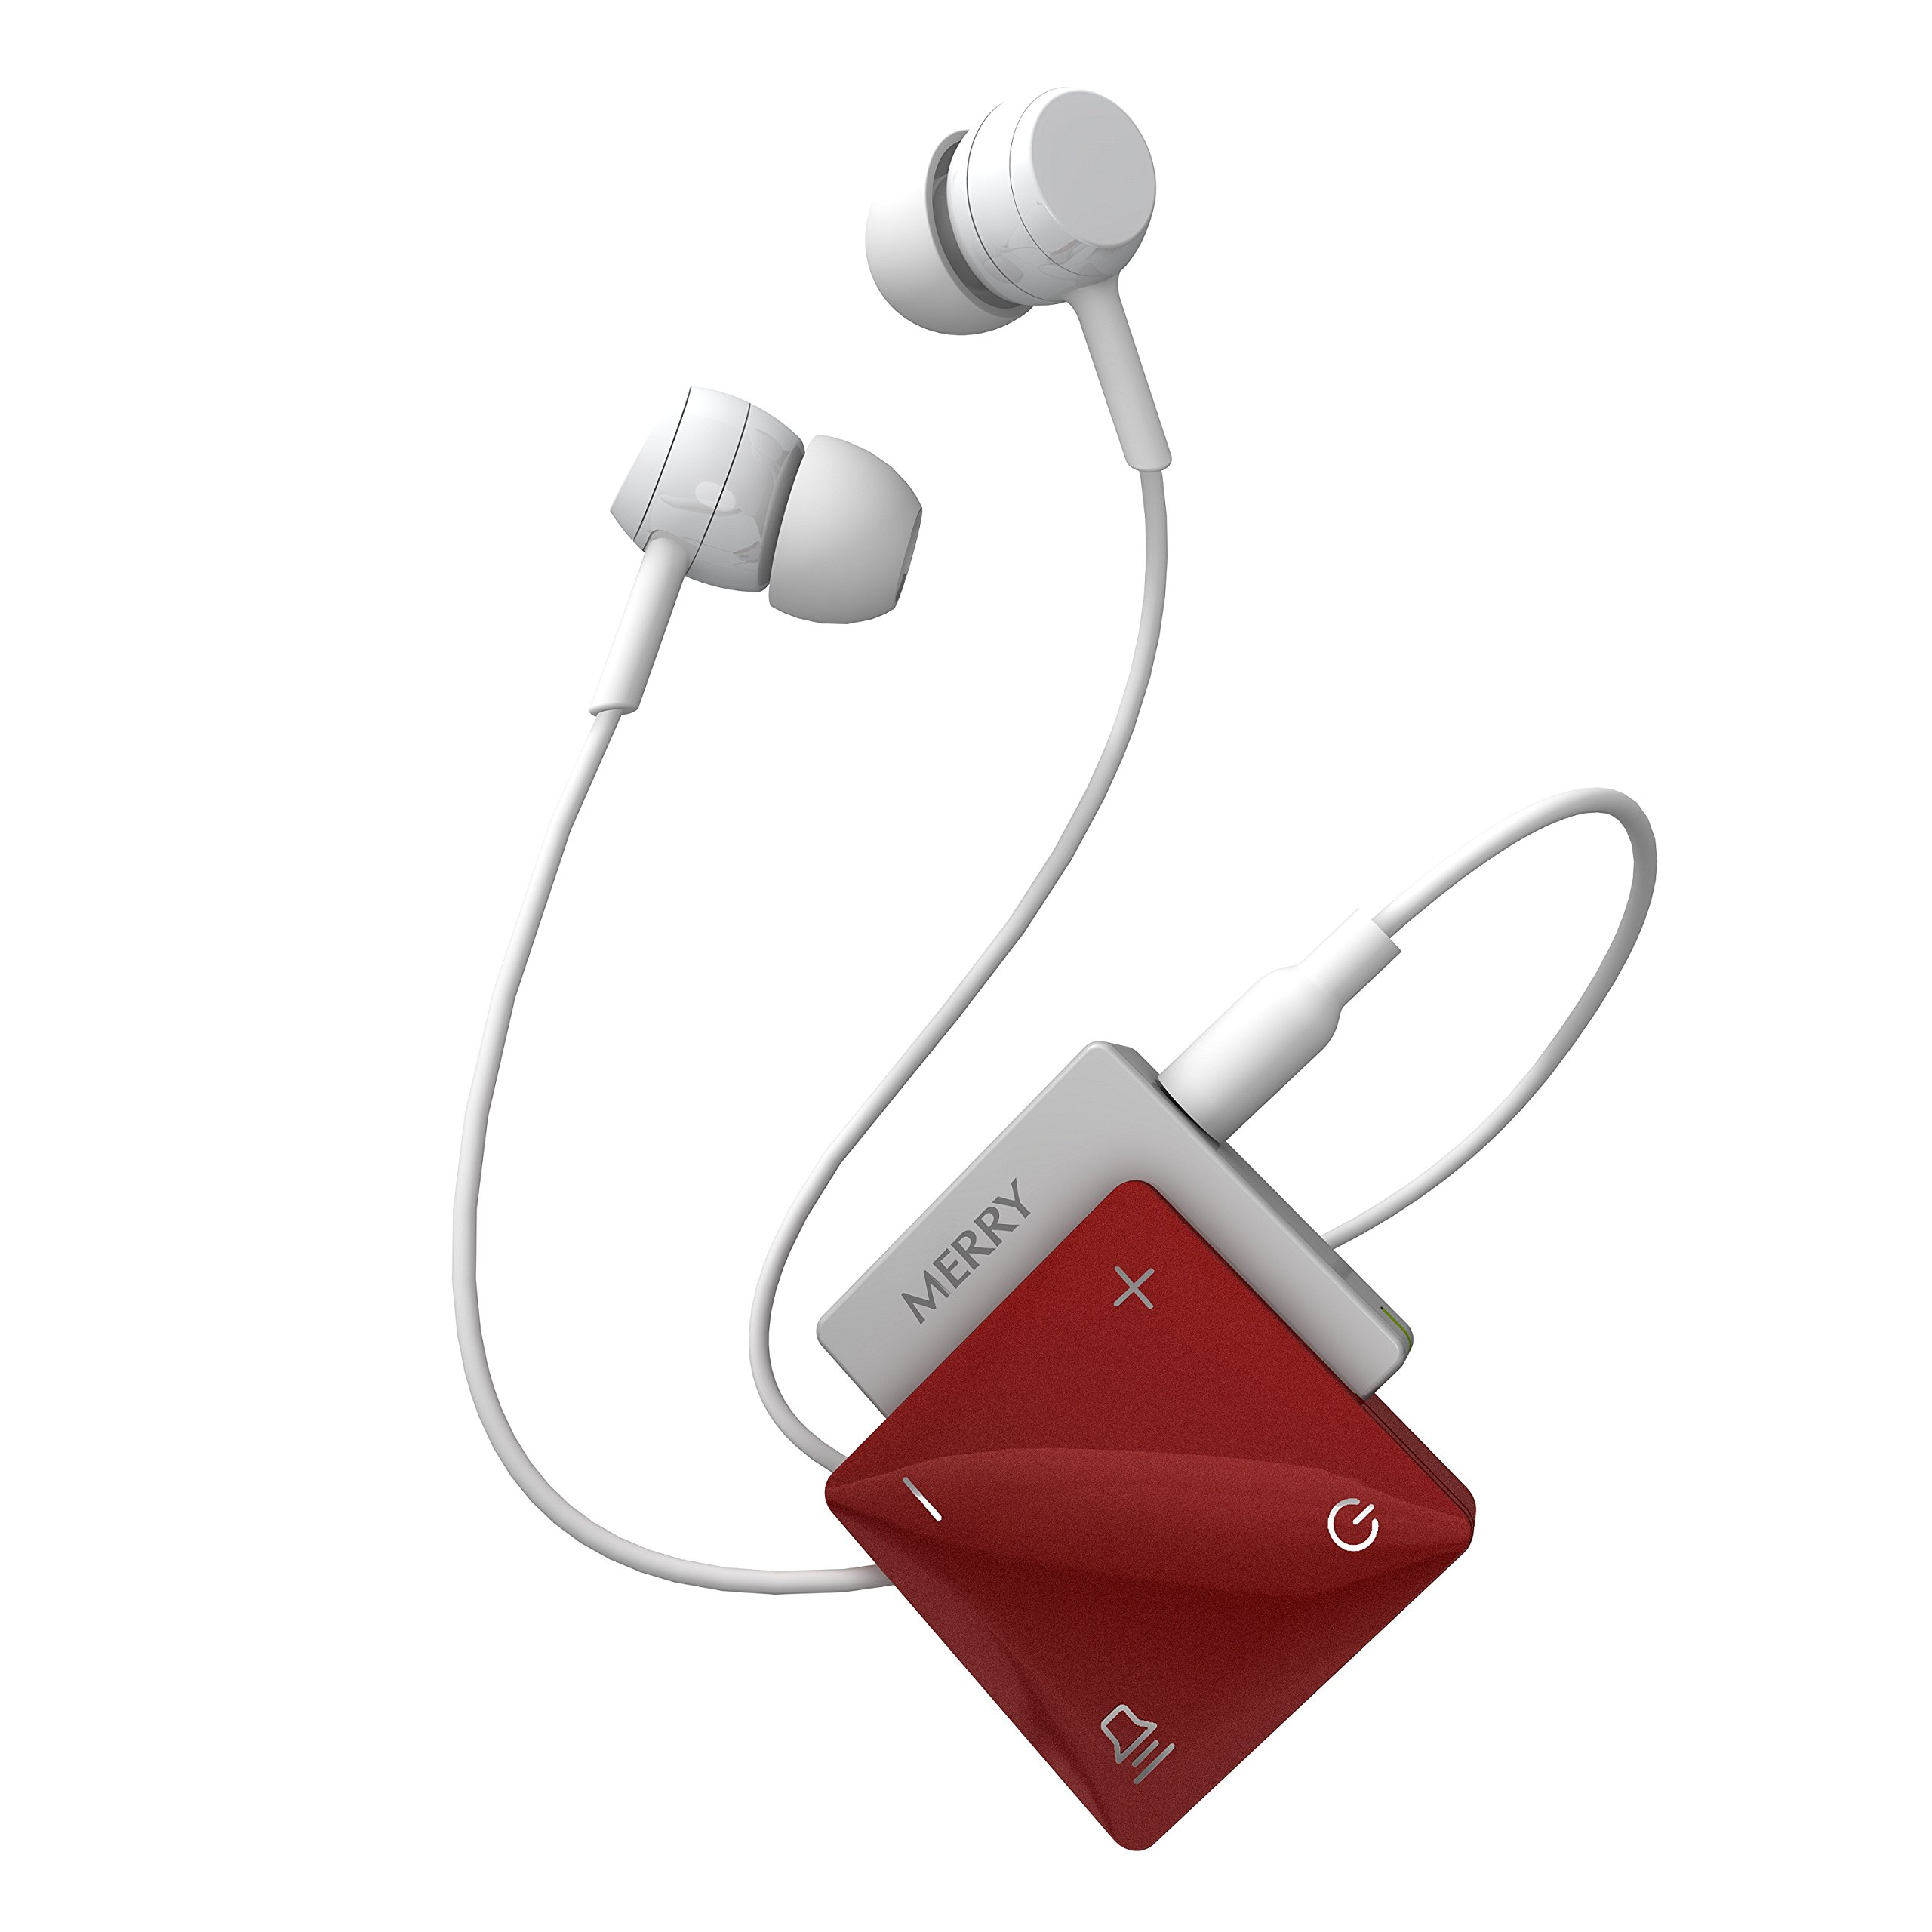 ME-300D Concerto Personal Sound Amplifier - Premium Lightweight Amplifier with Rechargeable Batteries, Earphones and Carrying Case (Red)